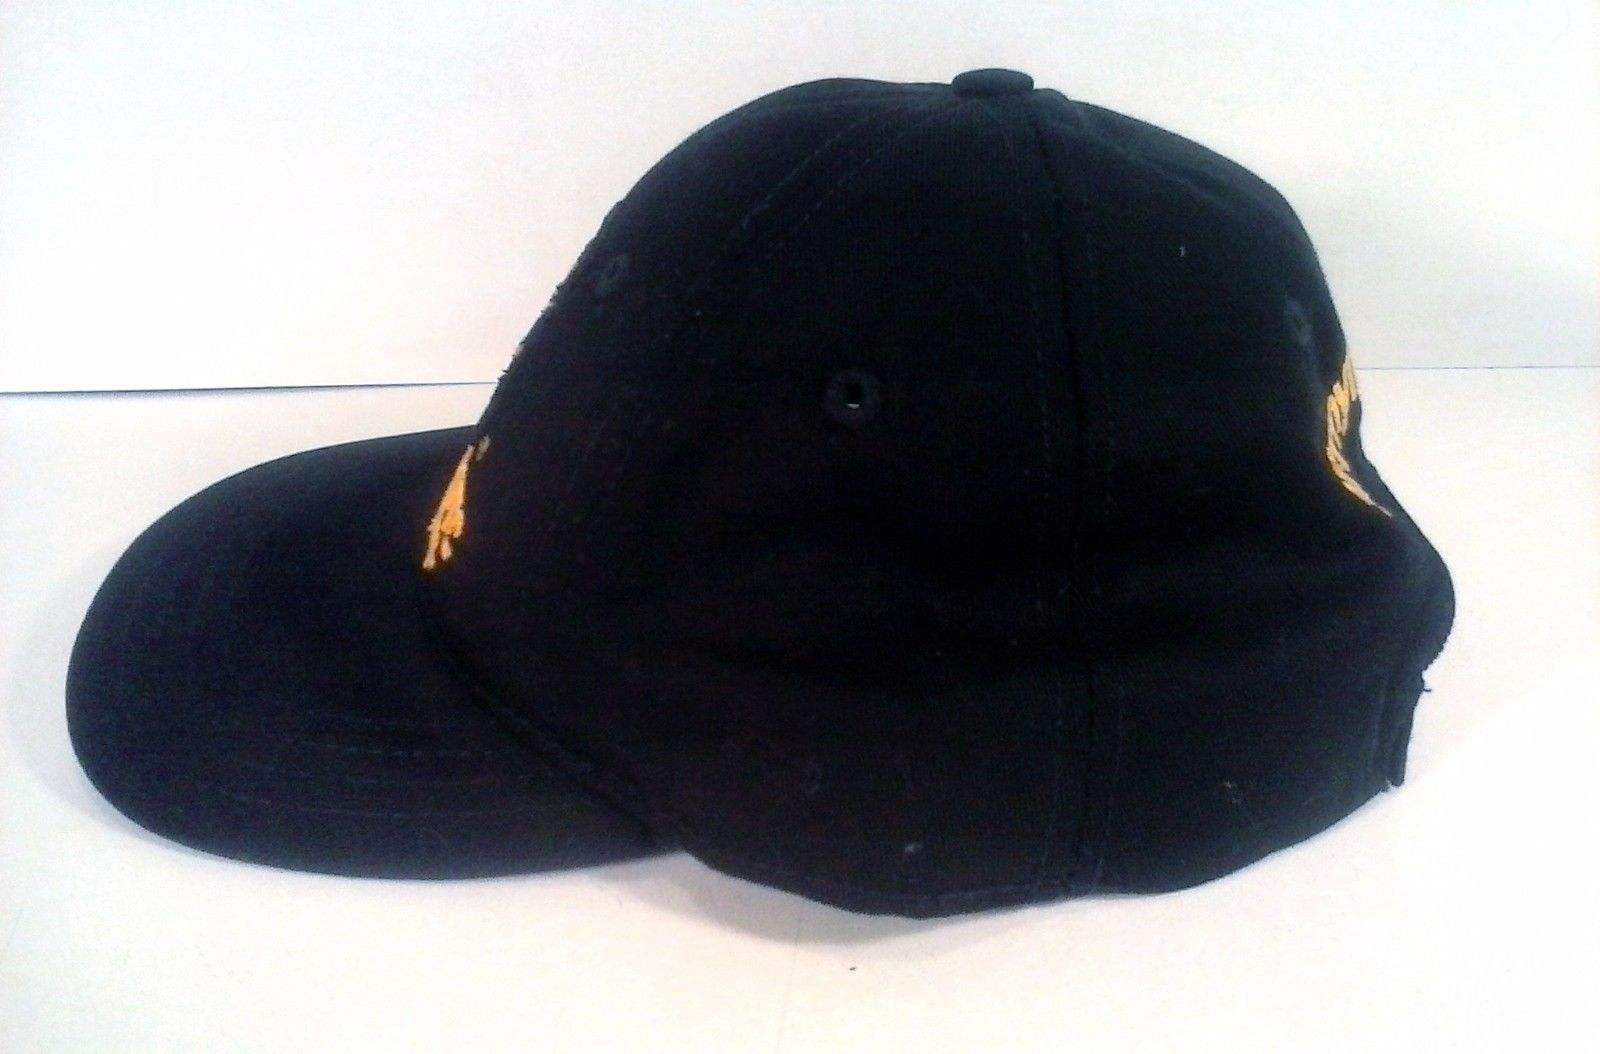 ARMY ROTC START STRONG LEADERSHIP EXCELLENCE MADE IN USA HAT CAP